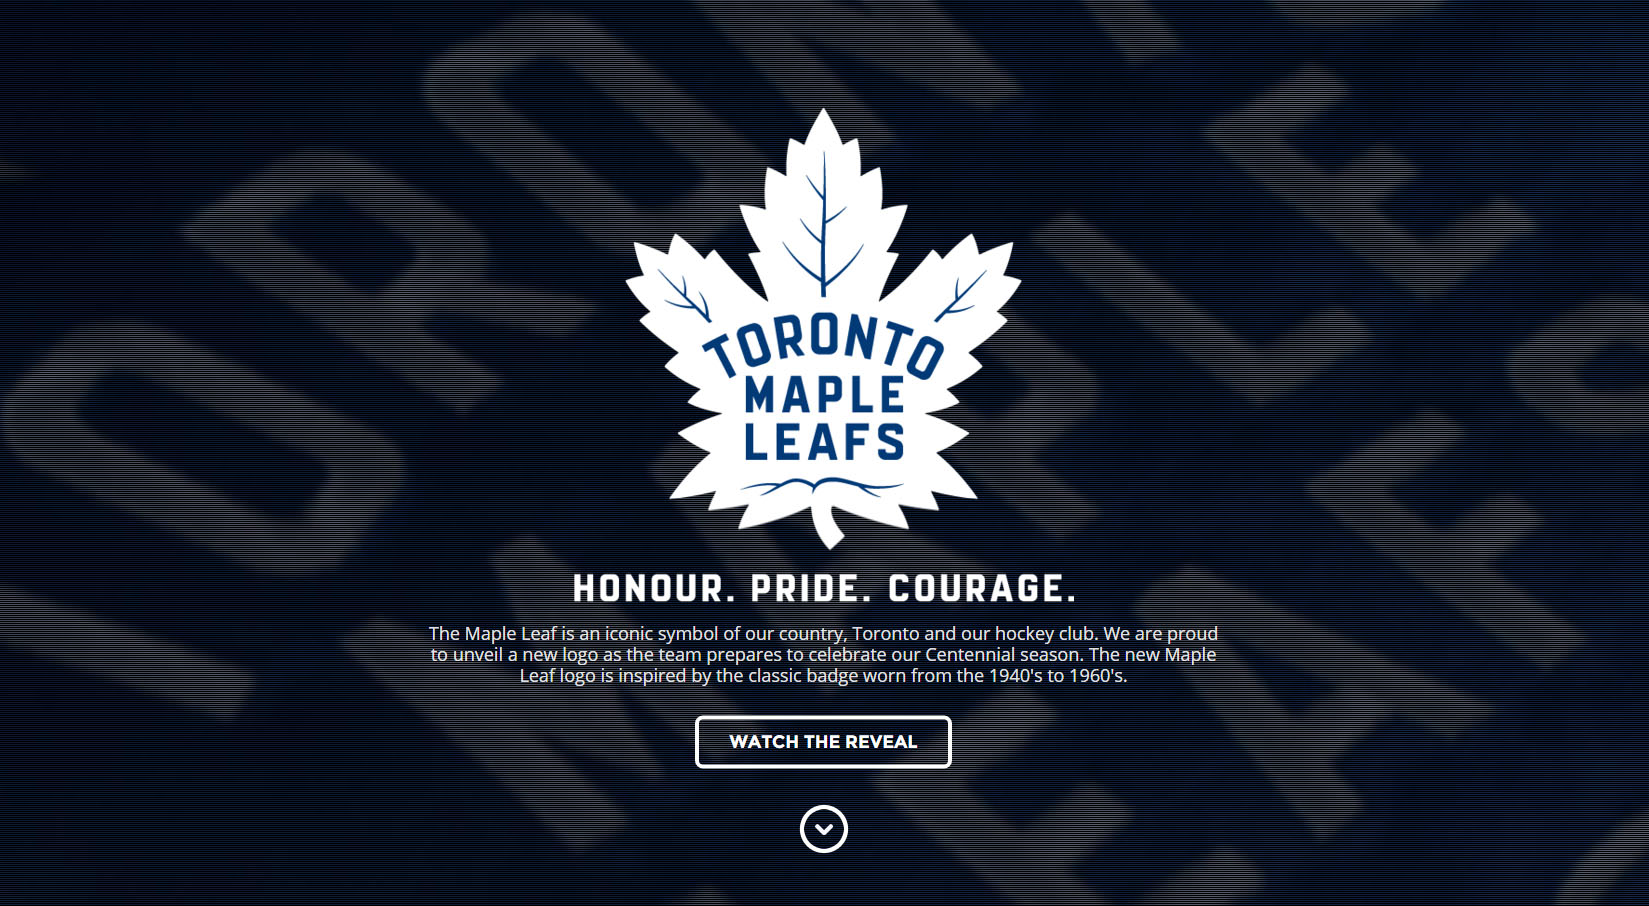 Toronto Maple Leafs Brand Refresh